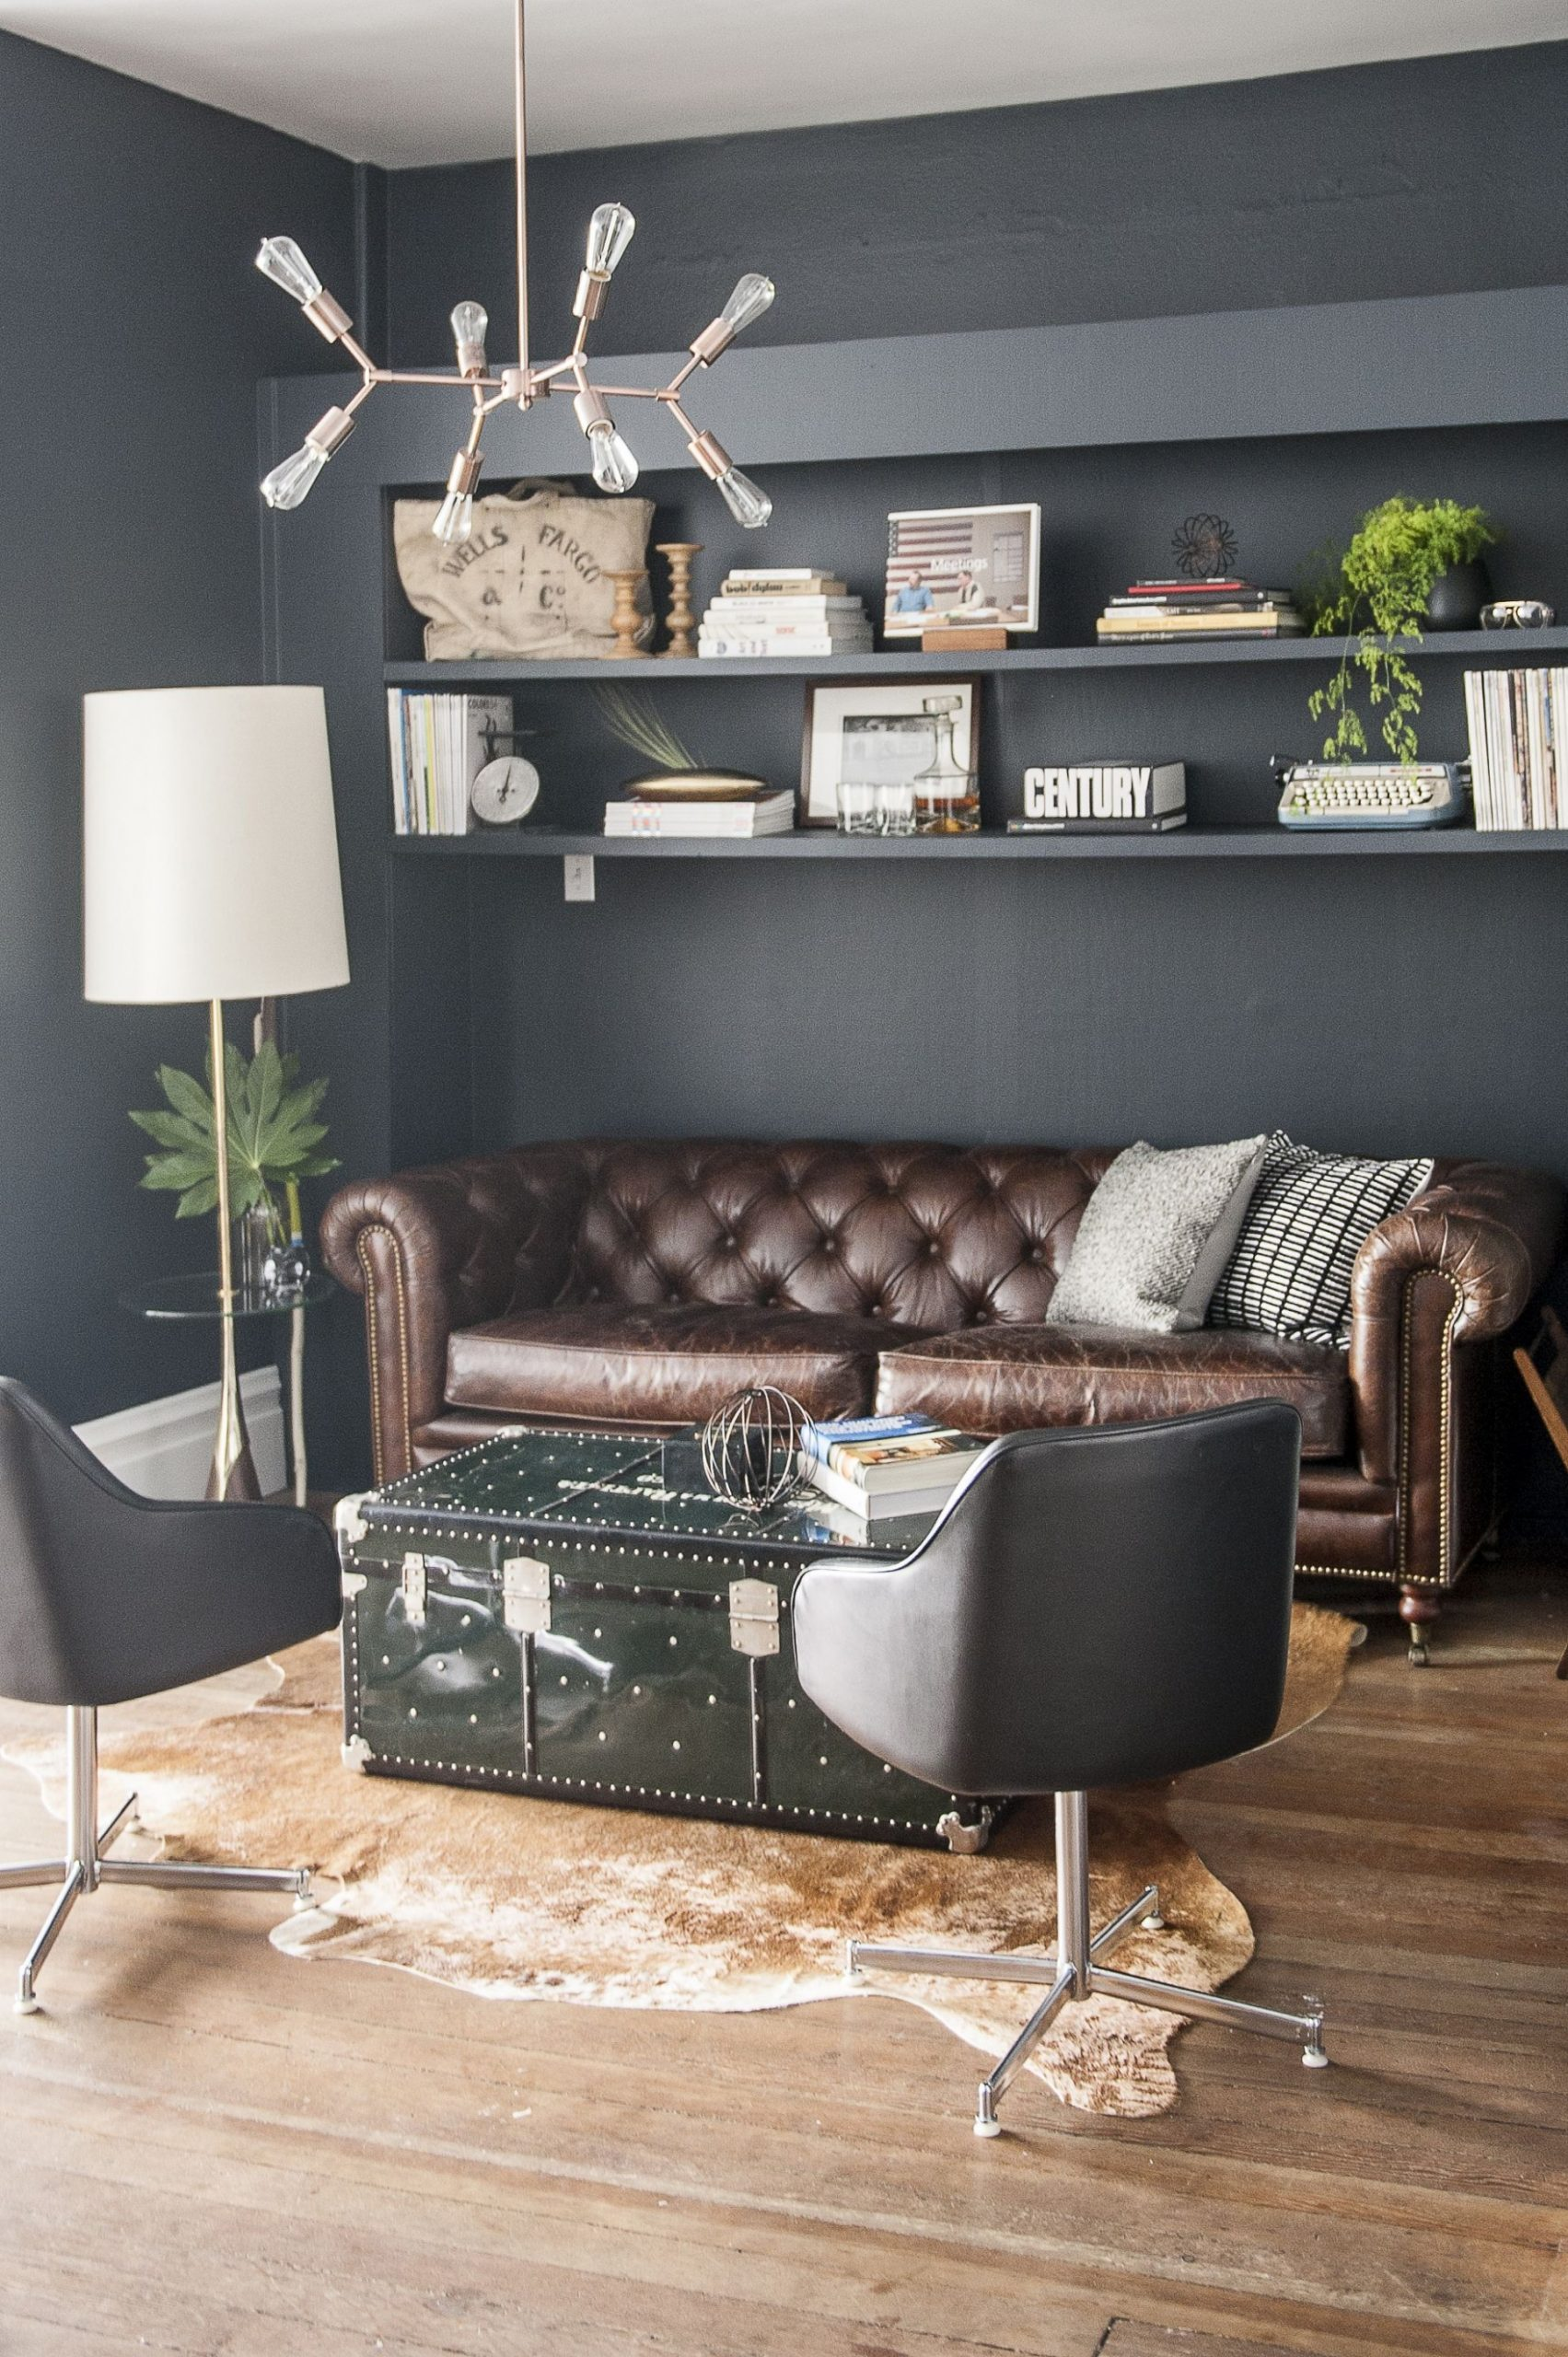 12 Best Home Office Decor Ideas - Home Office Accessories Ideas